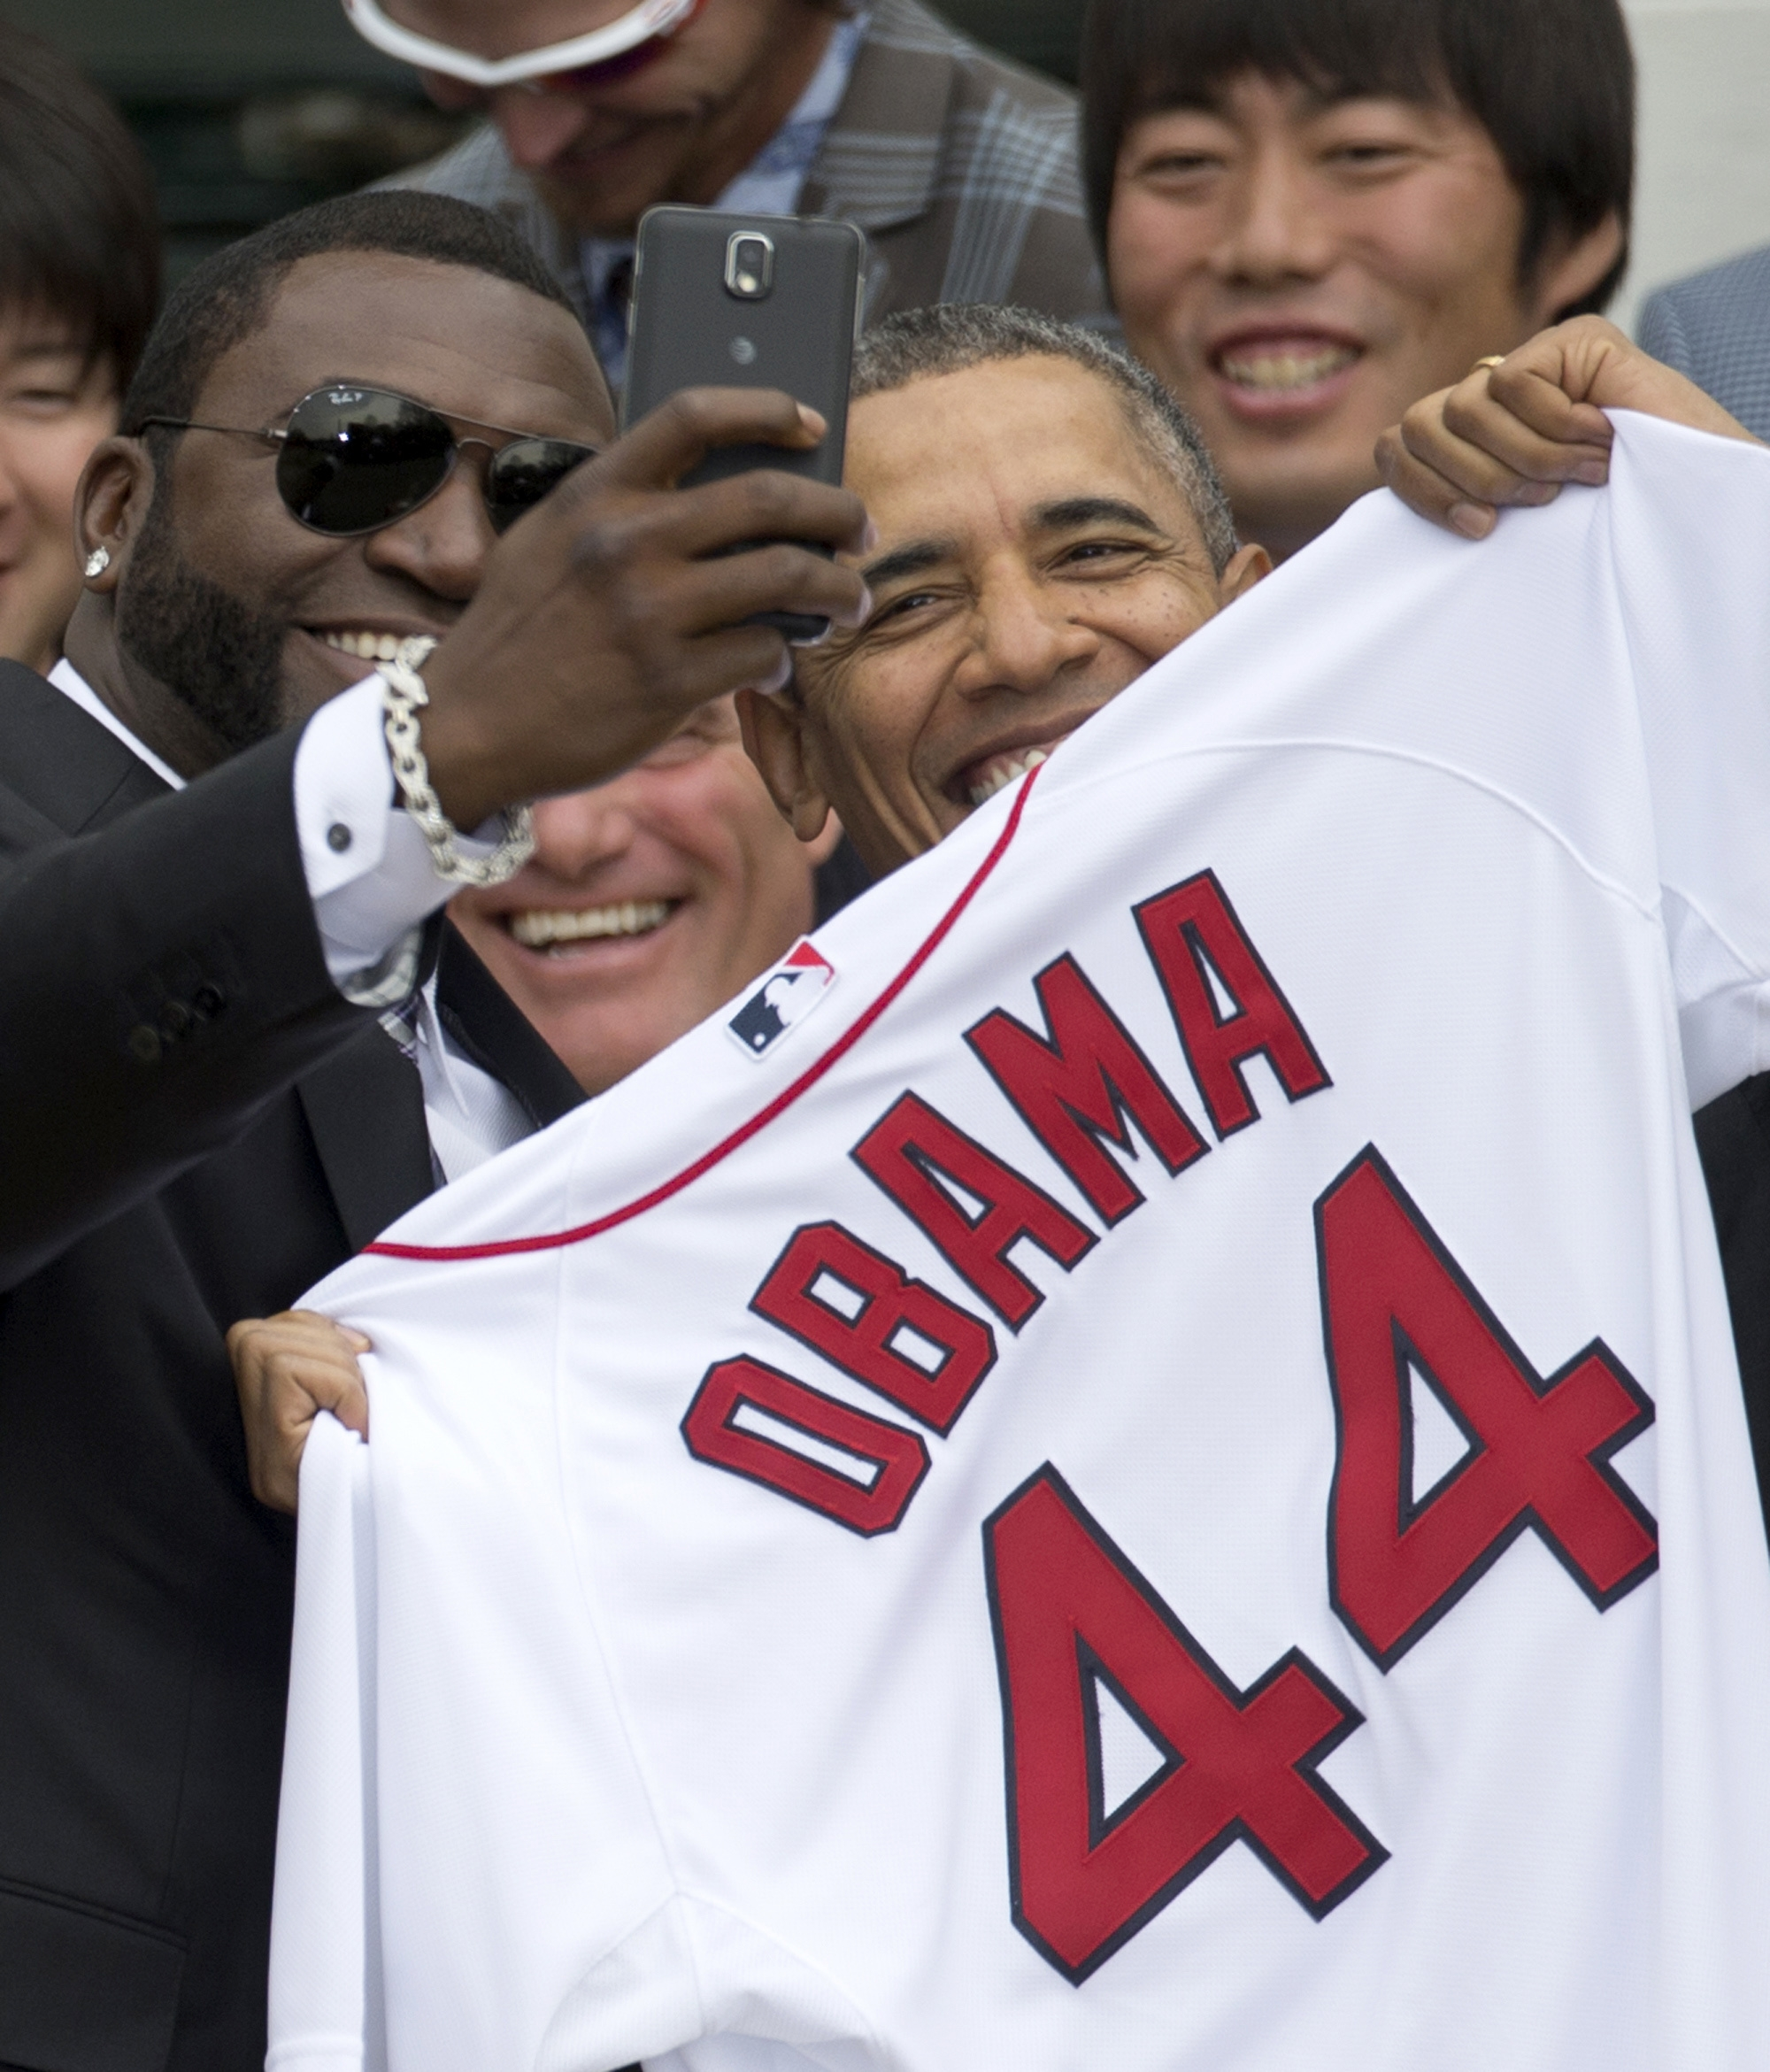 This is the photo of David Ortiz and President Obama that the White House objects to because of its commercial use.